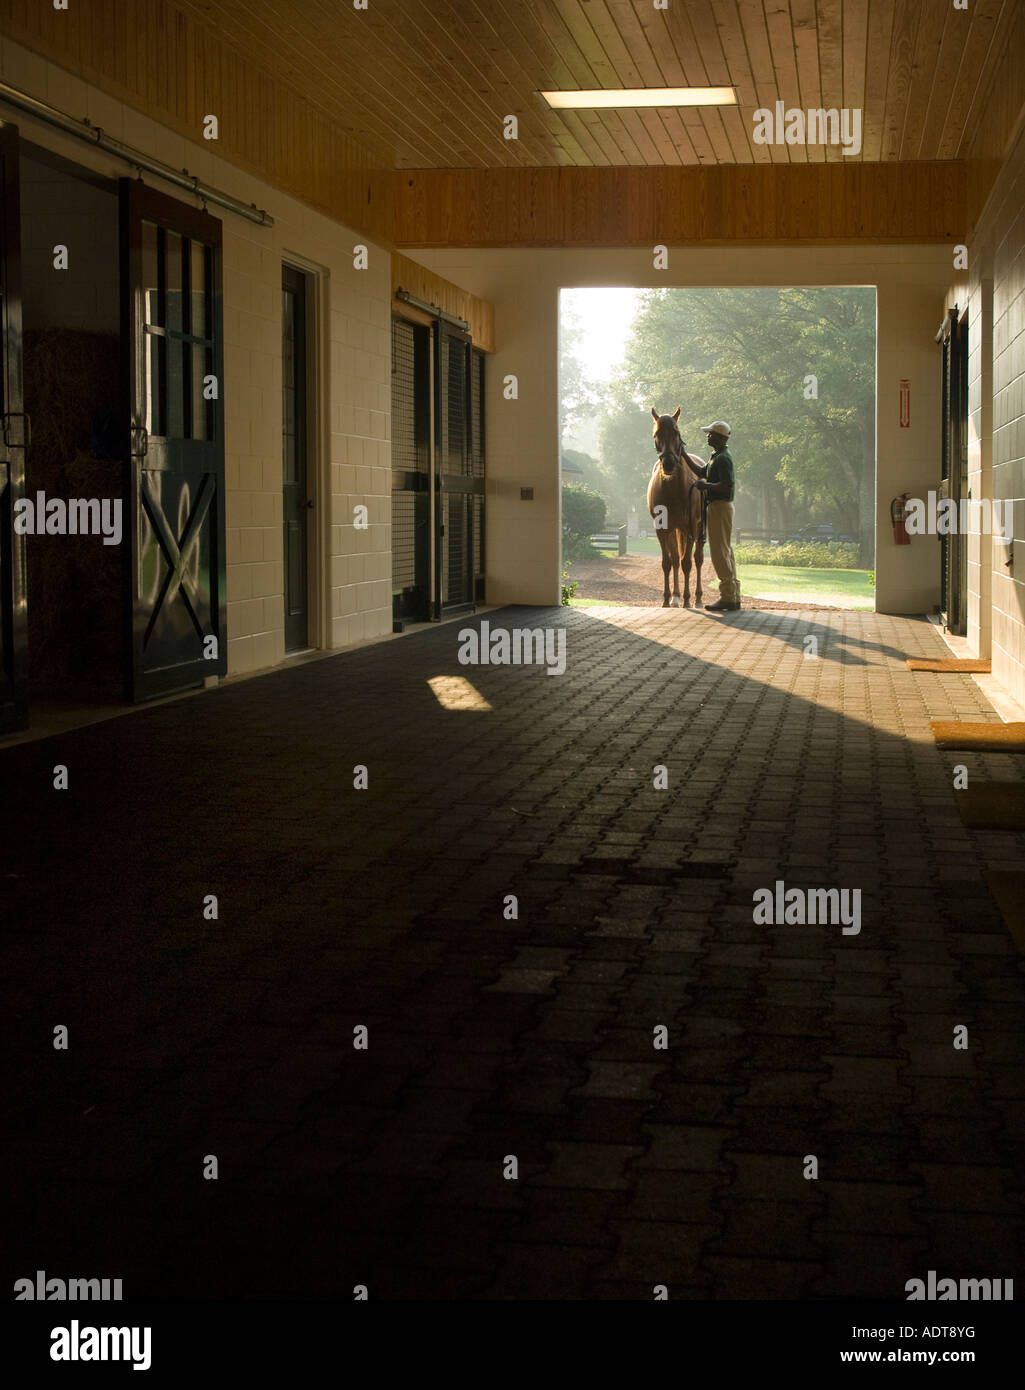 A young black man groom stands holding and rubbing a Thoroughbred horse stallion in stud barn aisleway - Stock Image